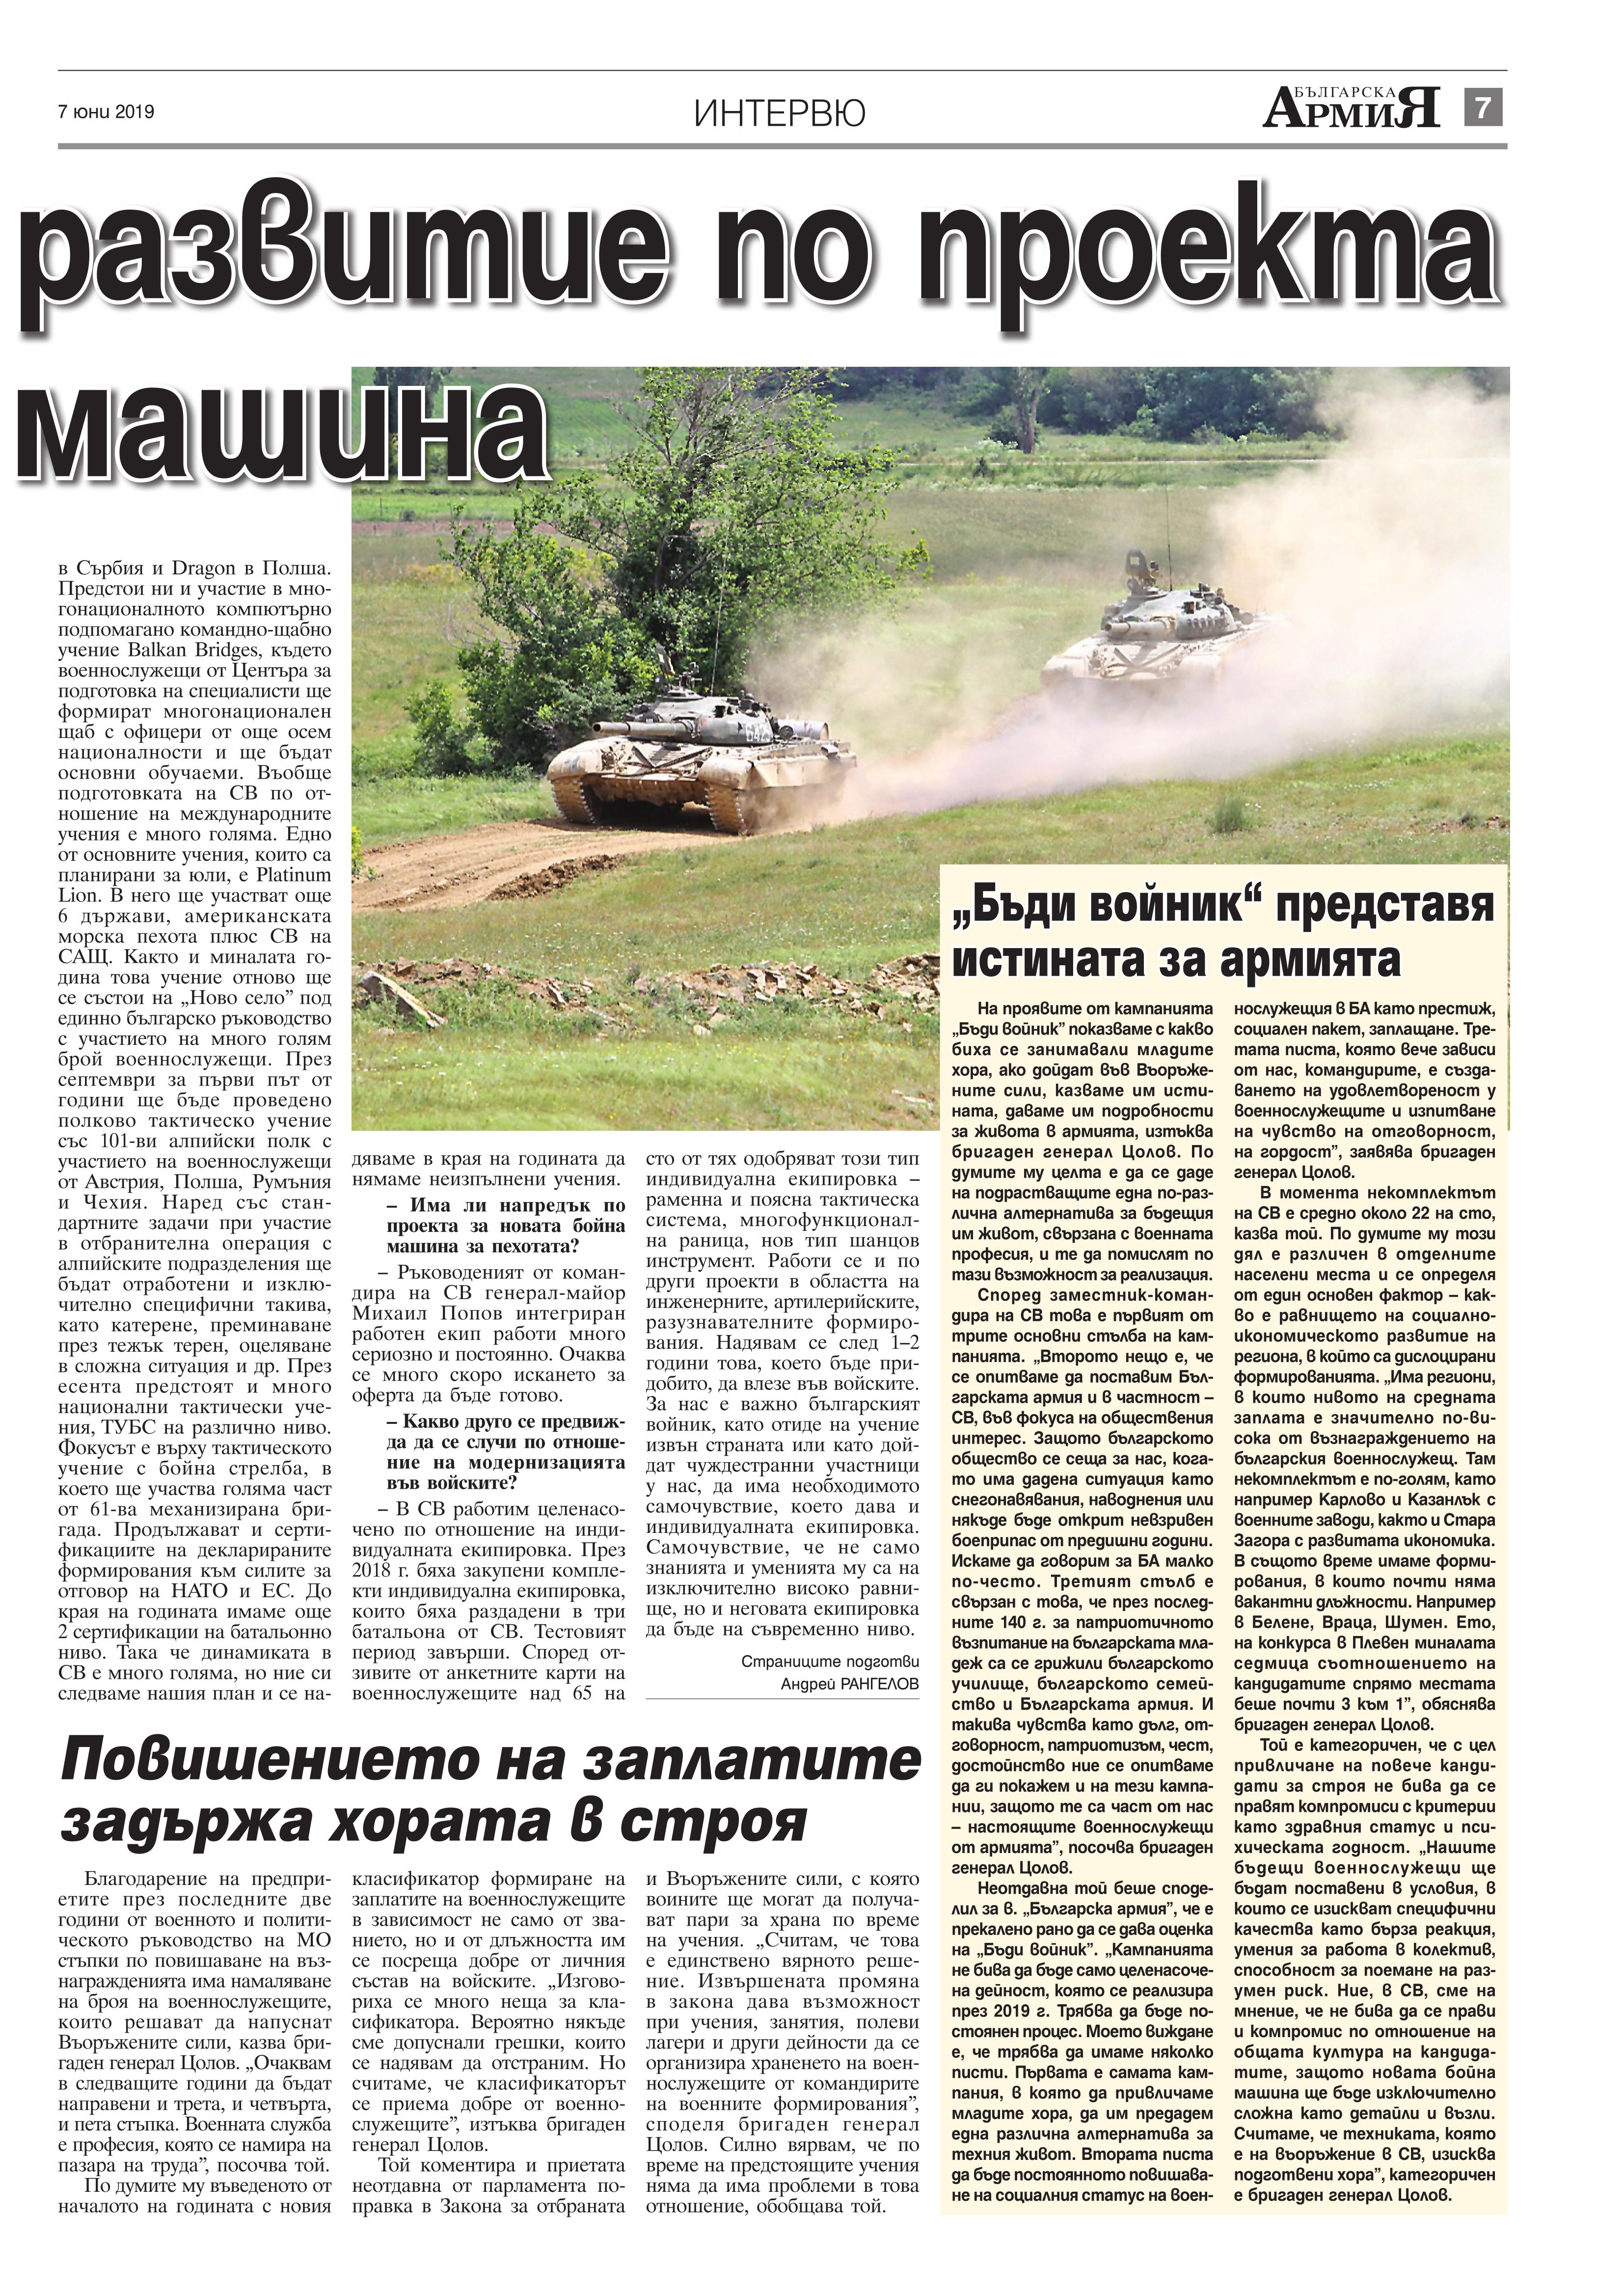 https://armymedia.bg/wp-content/uploads/2015/06/07.page1_-95.jpg